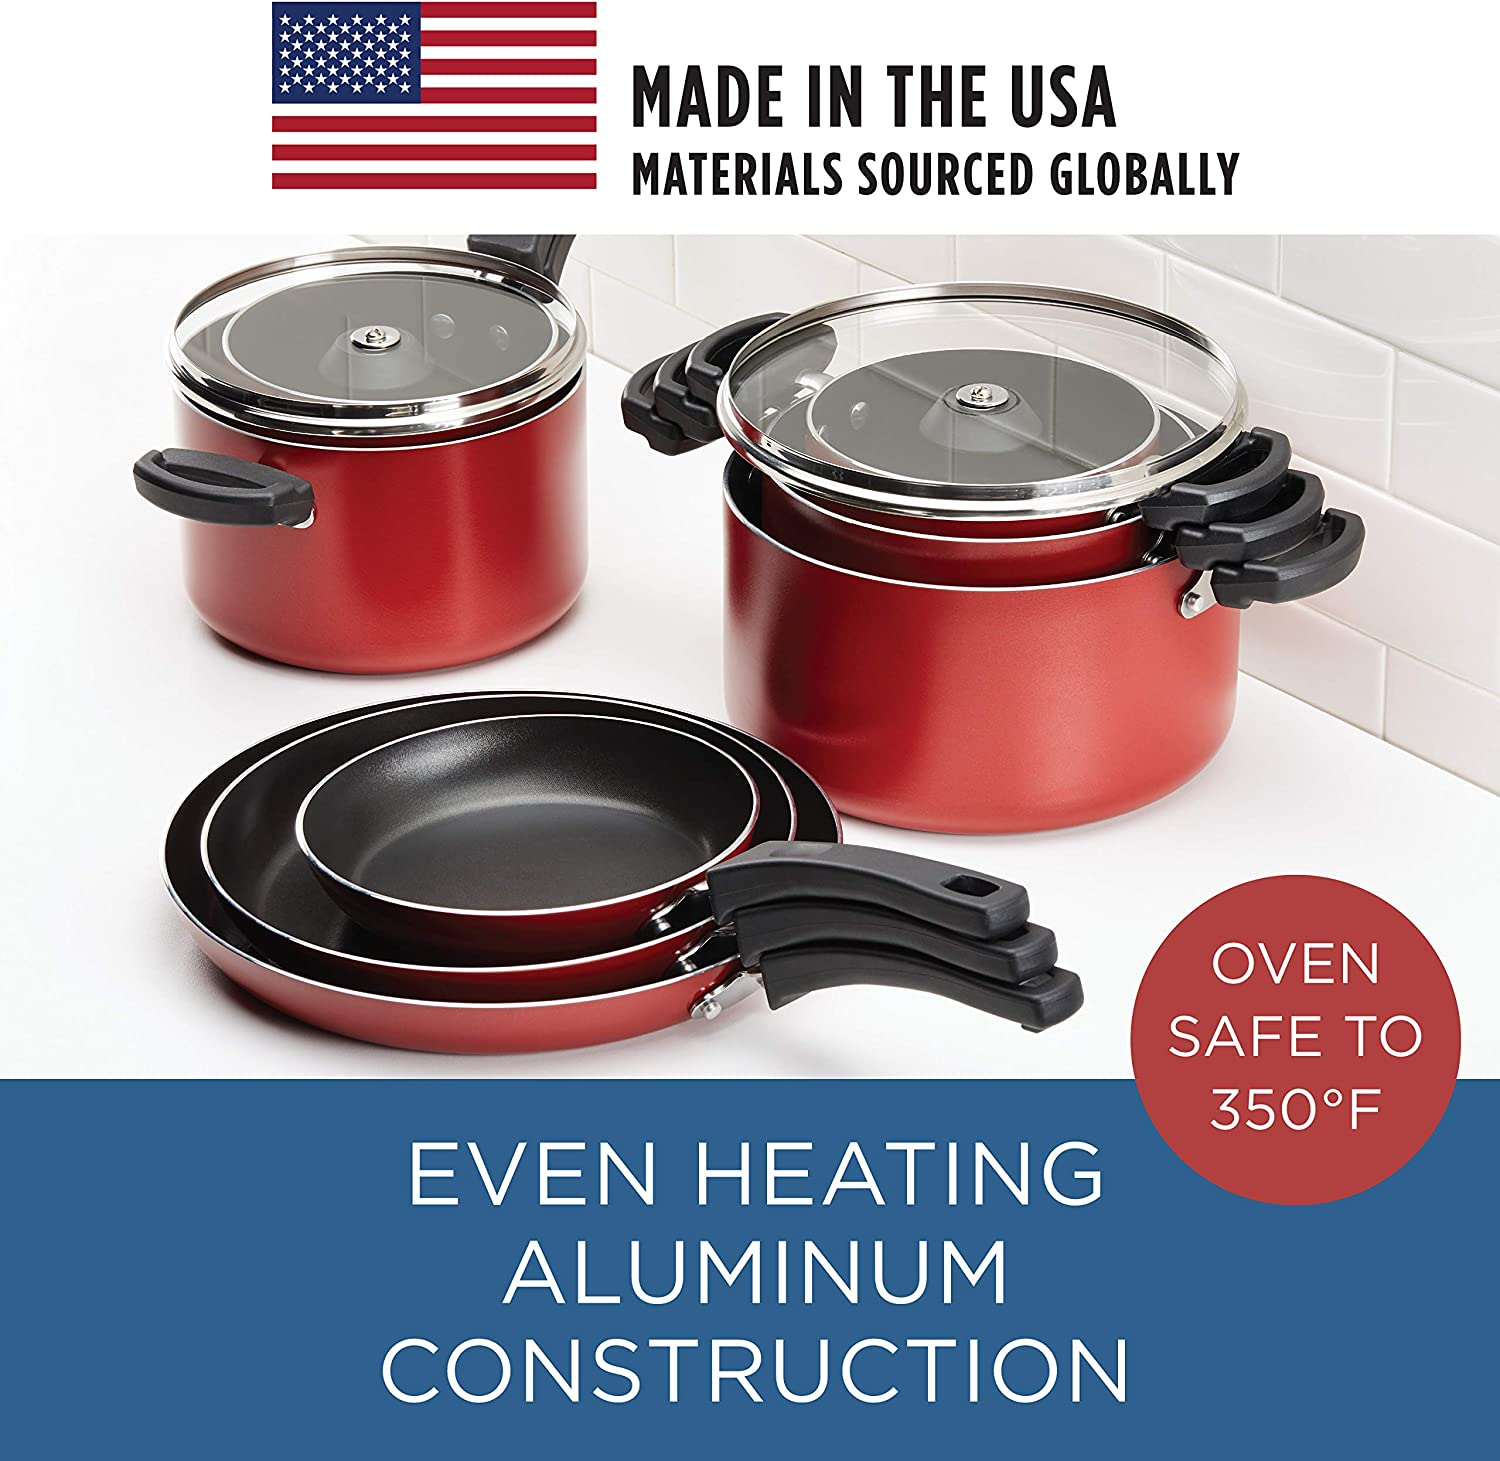 Farberware Neat Nest Space Saving Nonstick Saucepots Pots And Pans Set Dishwasher Safe Made In The Usa 4 Piece Red Amazon Co Uk Kitchen Home